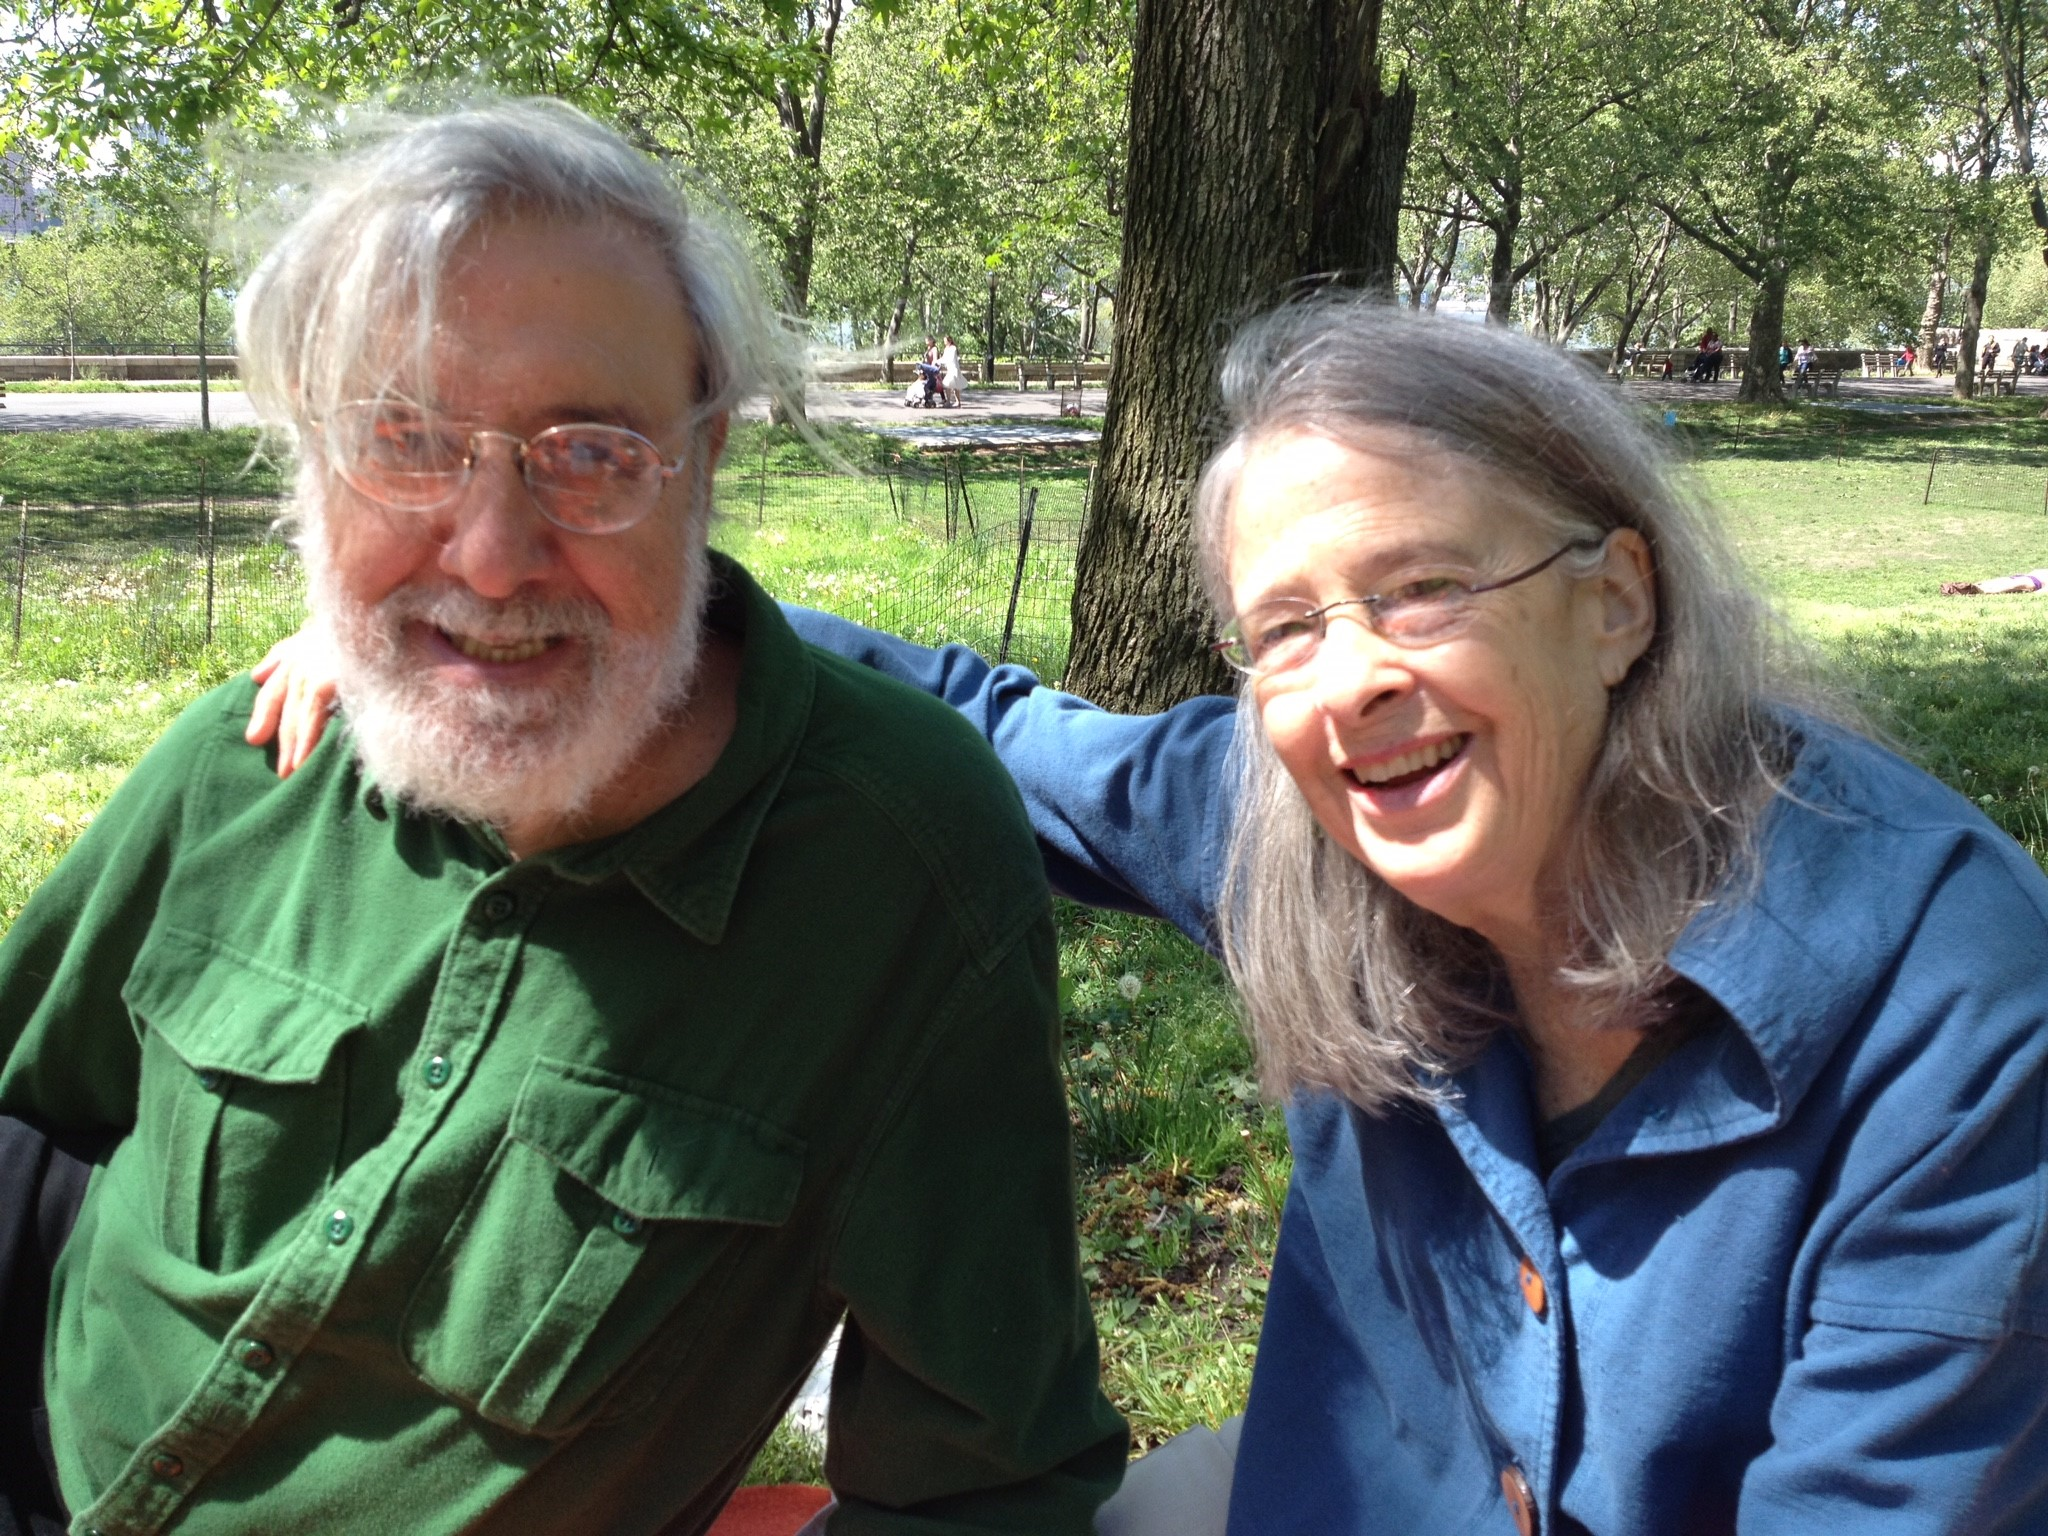 Joel Gressel and Eleanor Cory on a bench in a park.